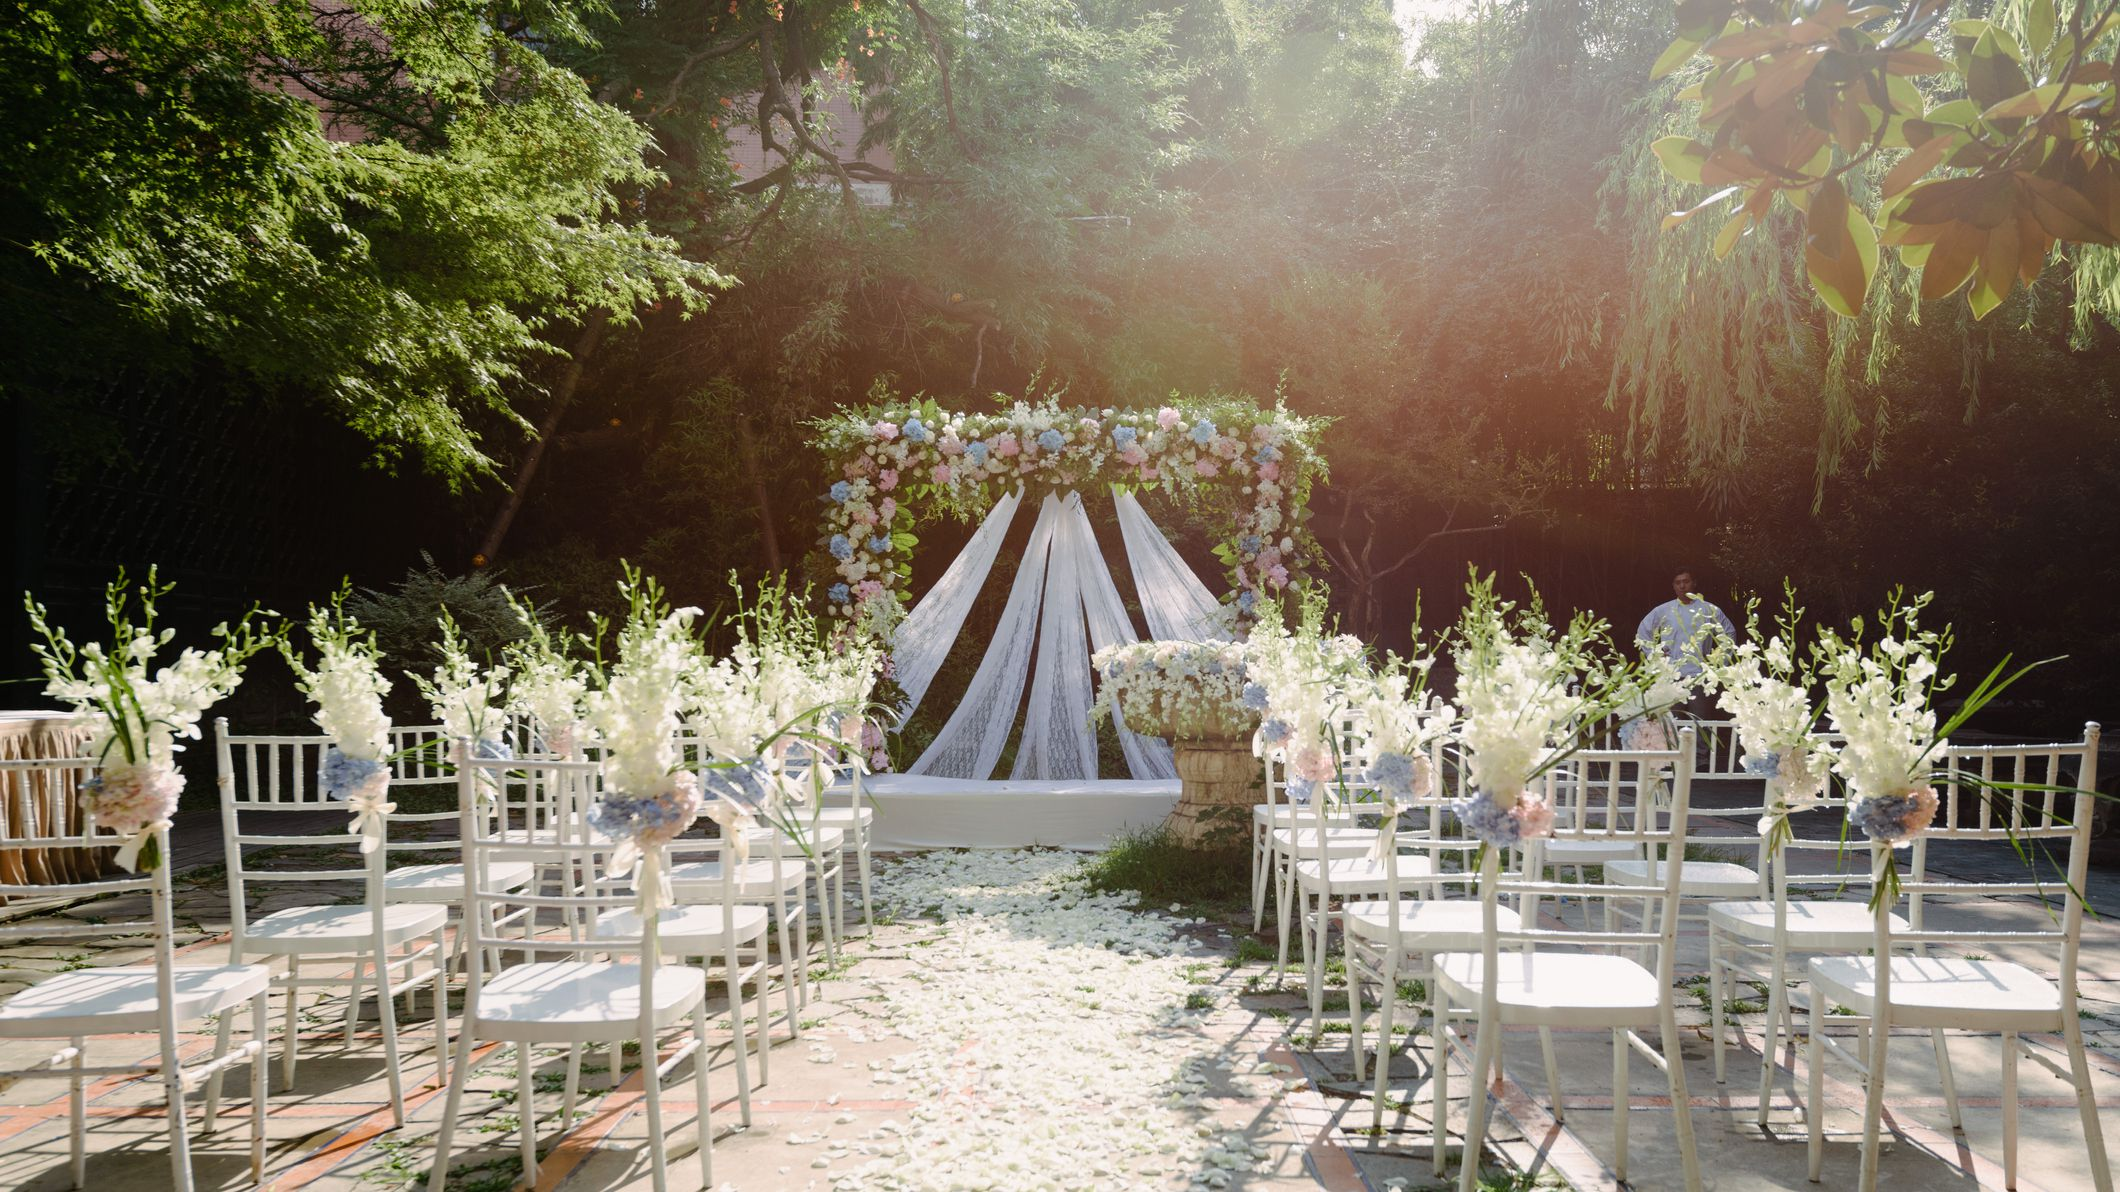 Bride S Side Or Groom S Side Where To Sit At A Wedding